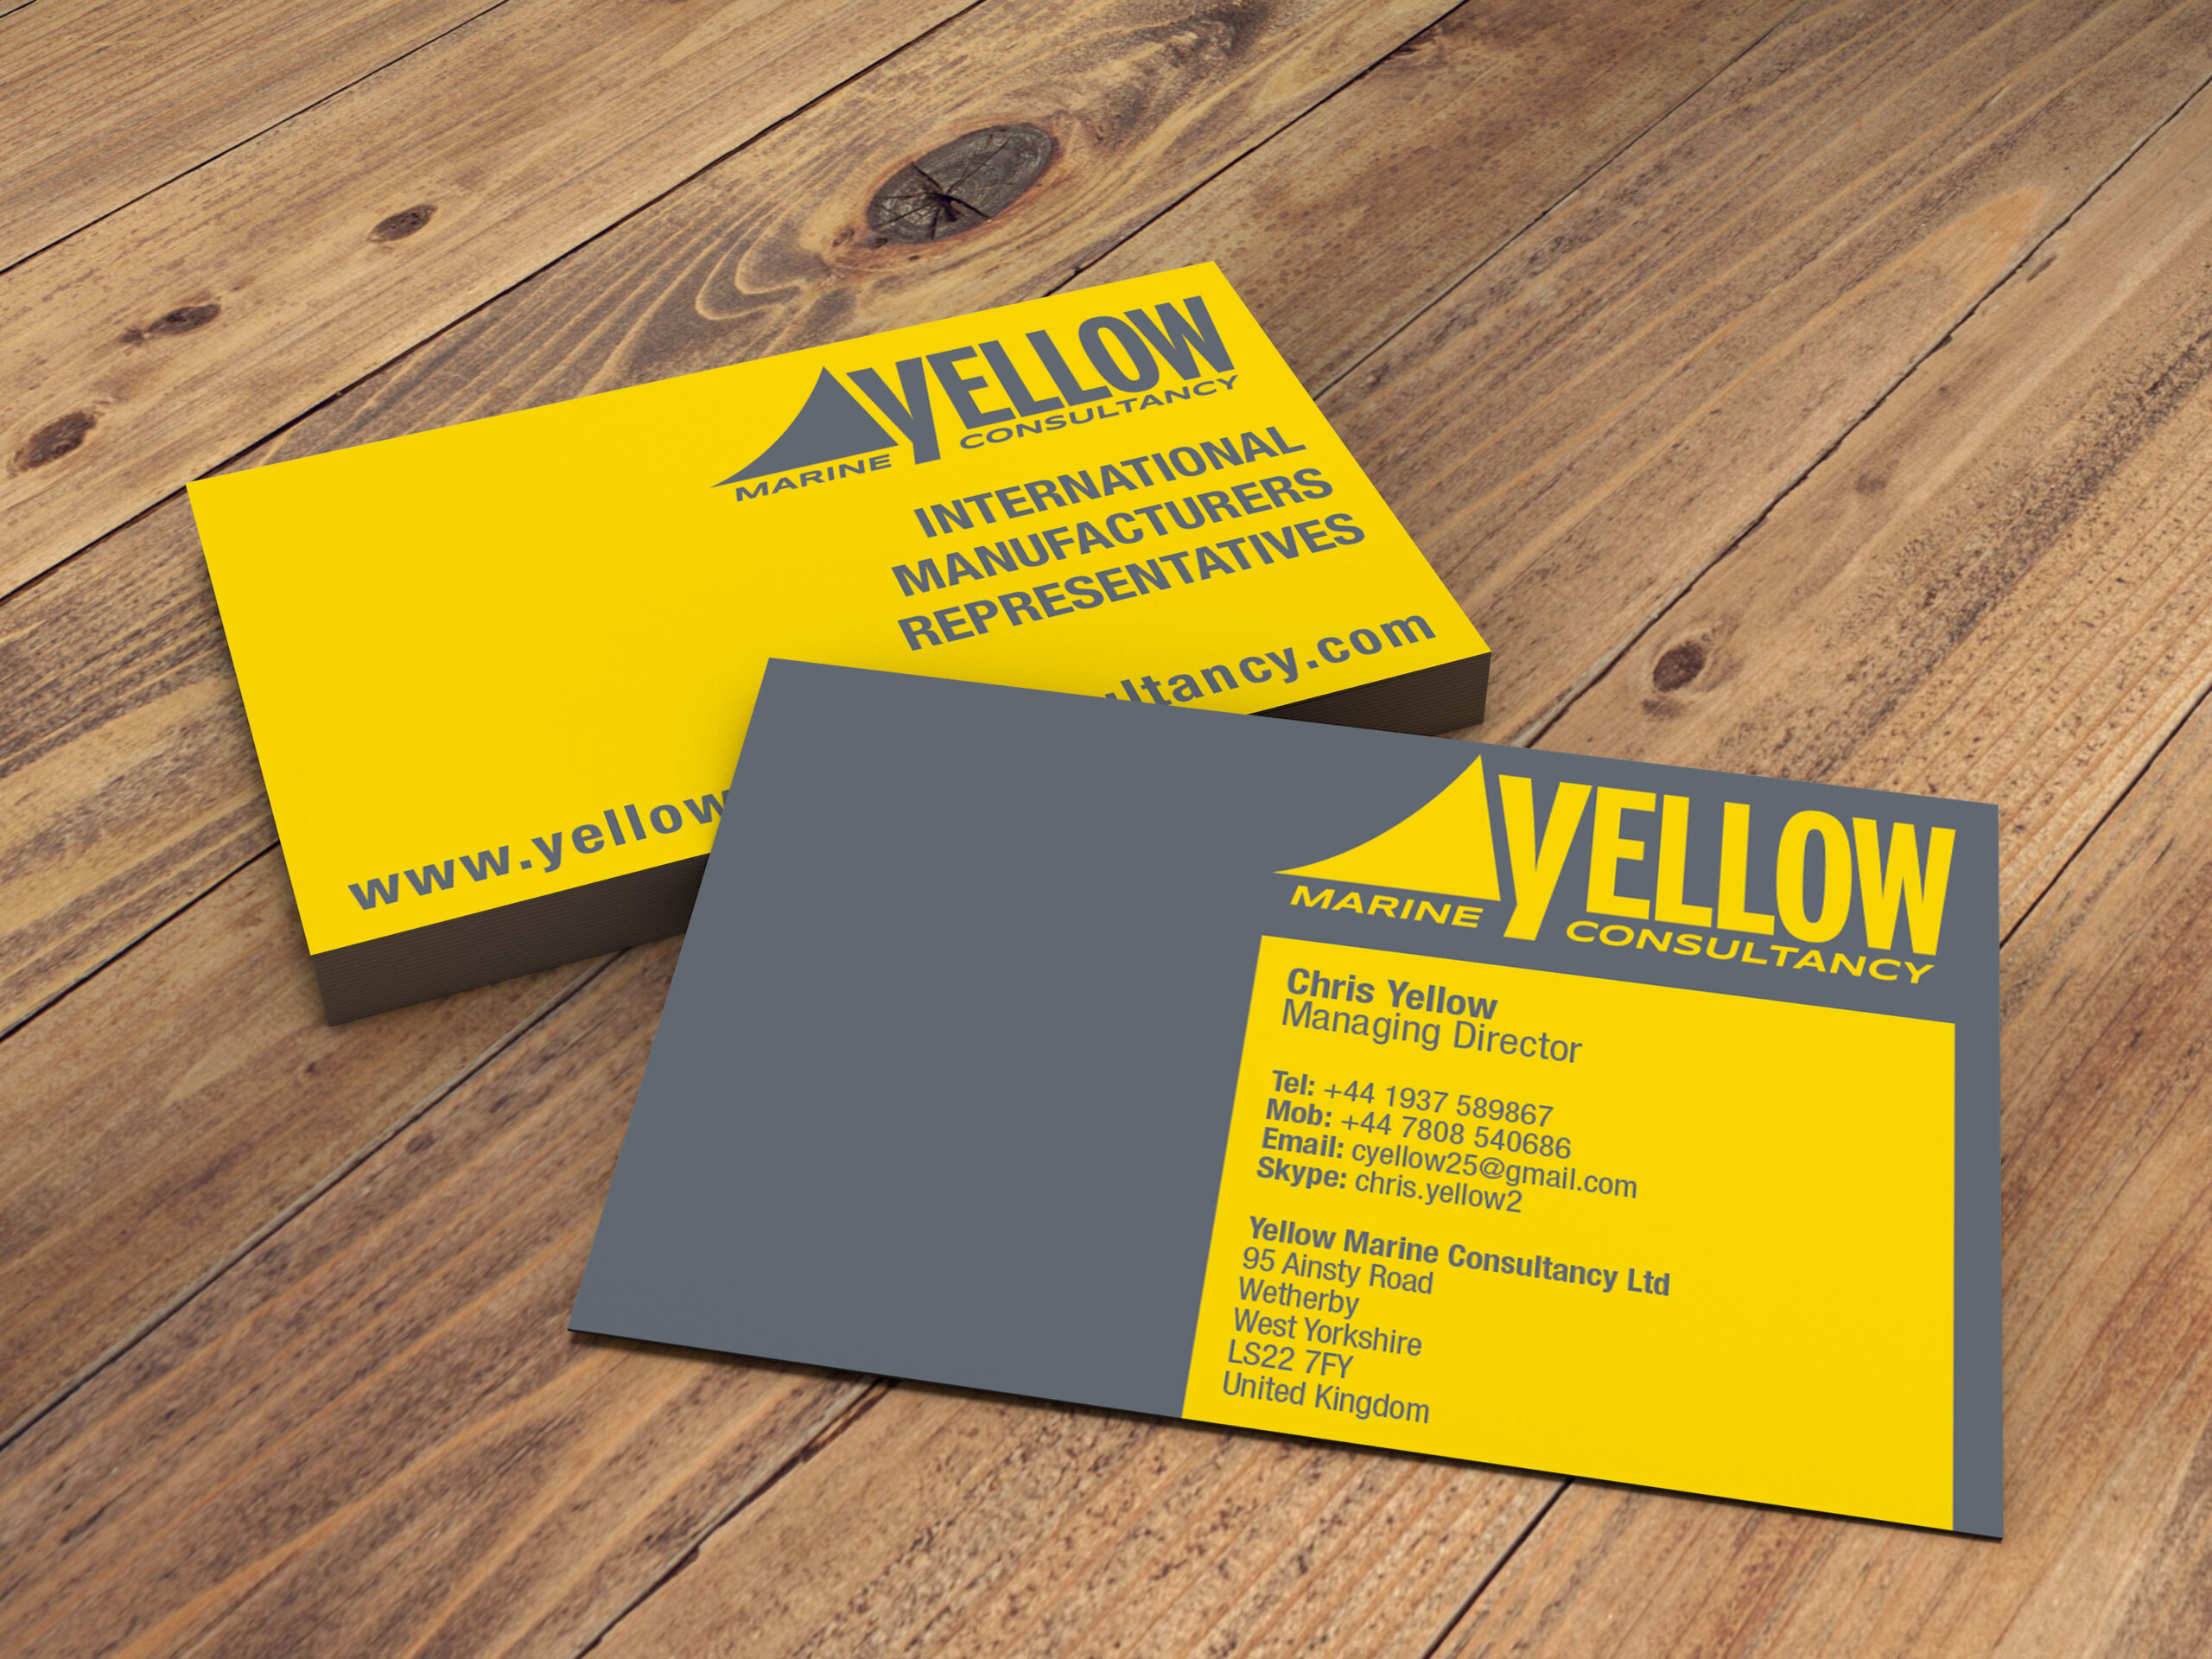 Yellow Marine Consultancy - Logo & Business Cards